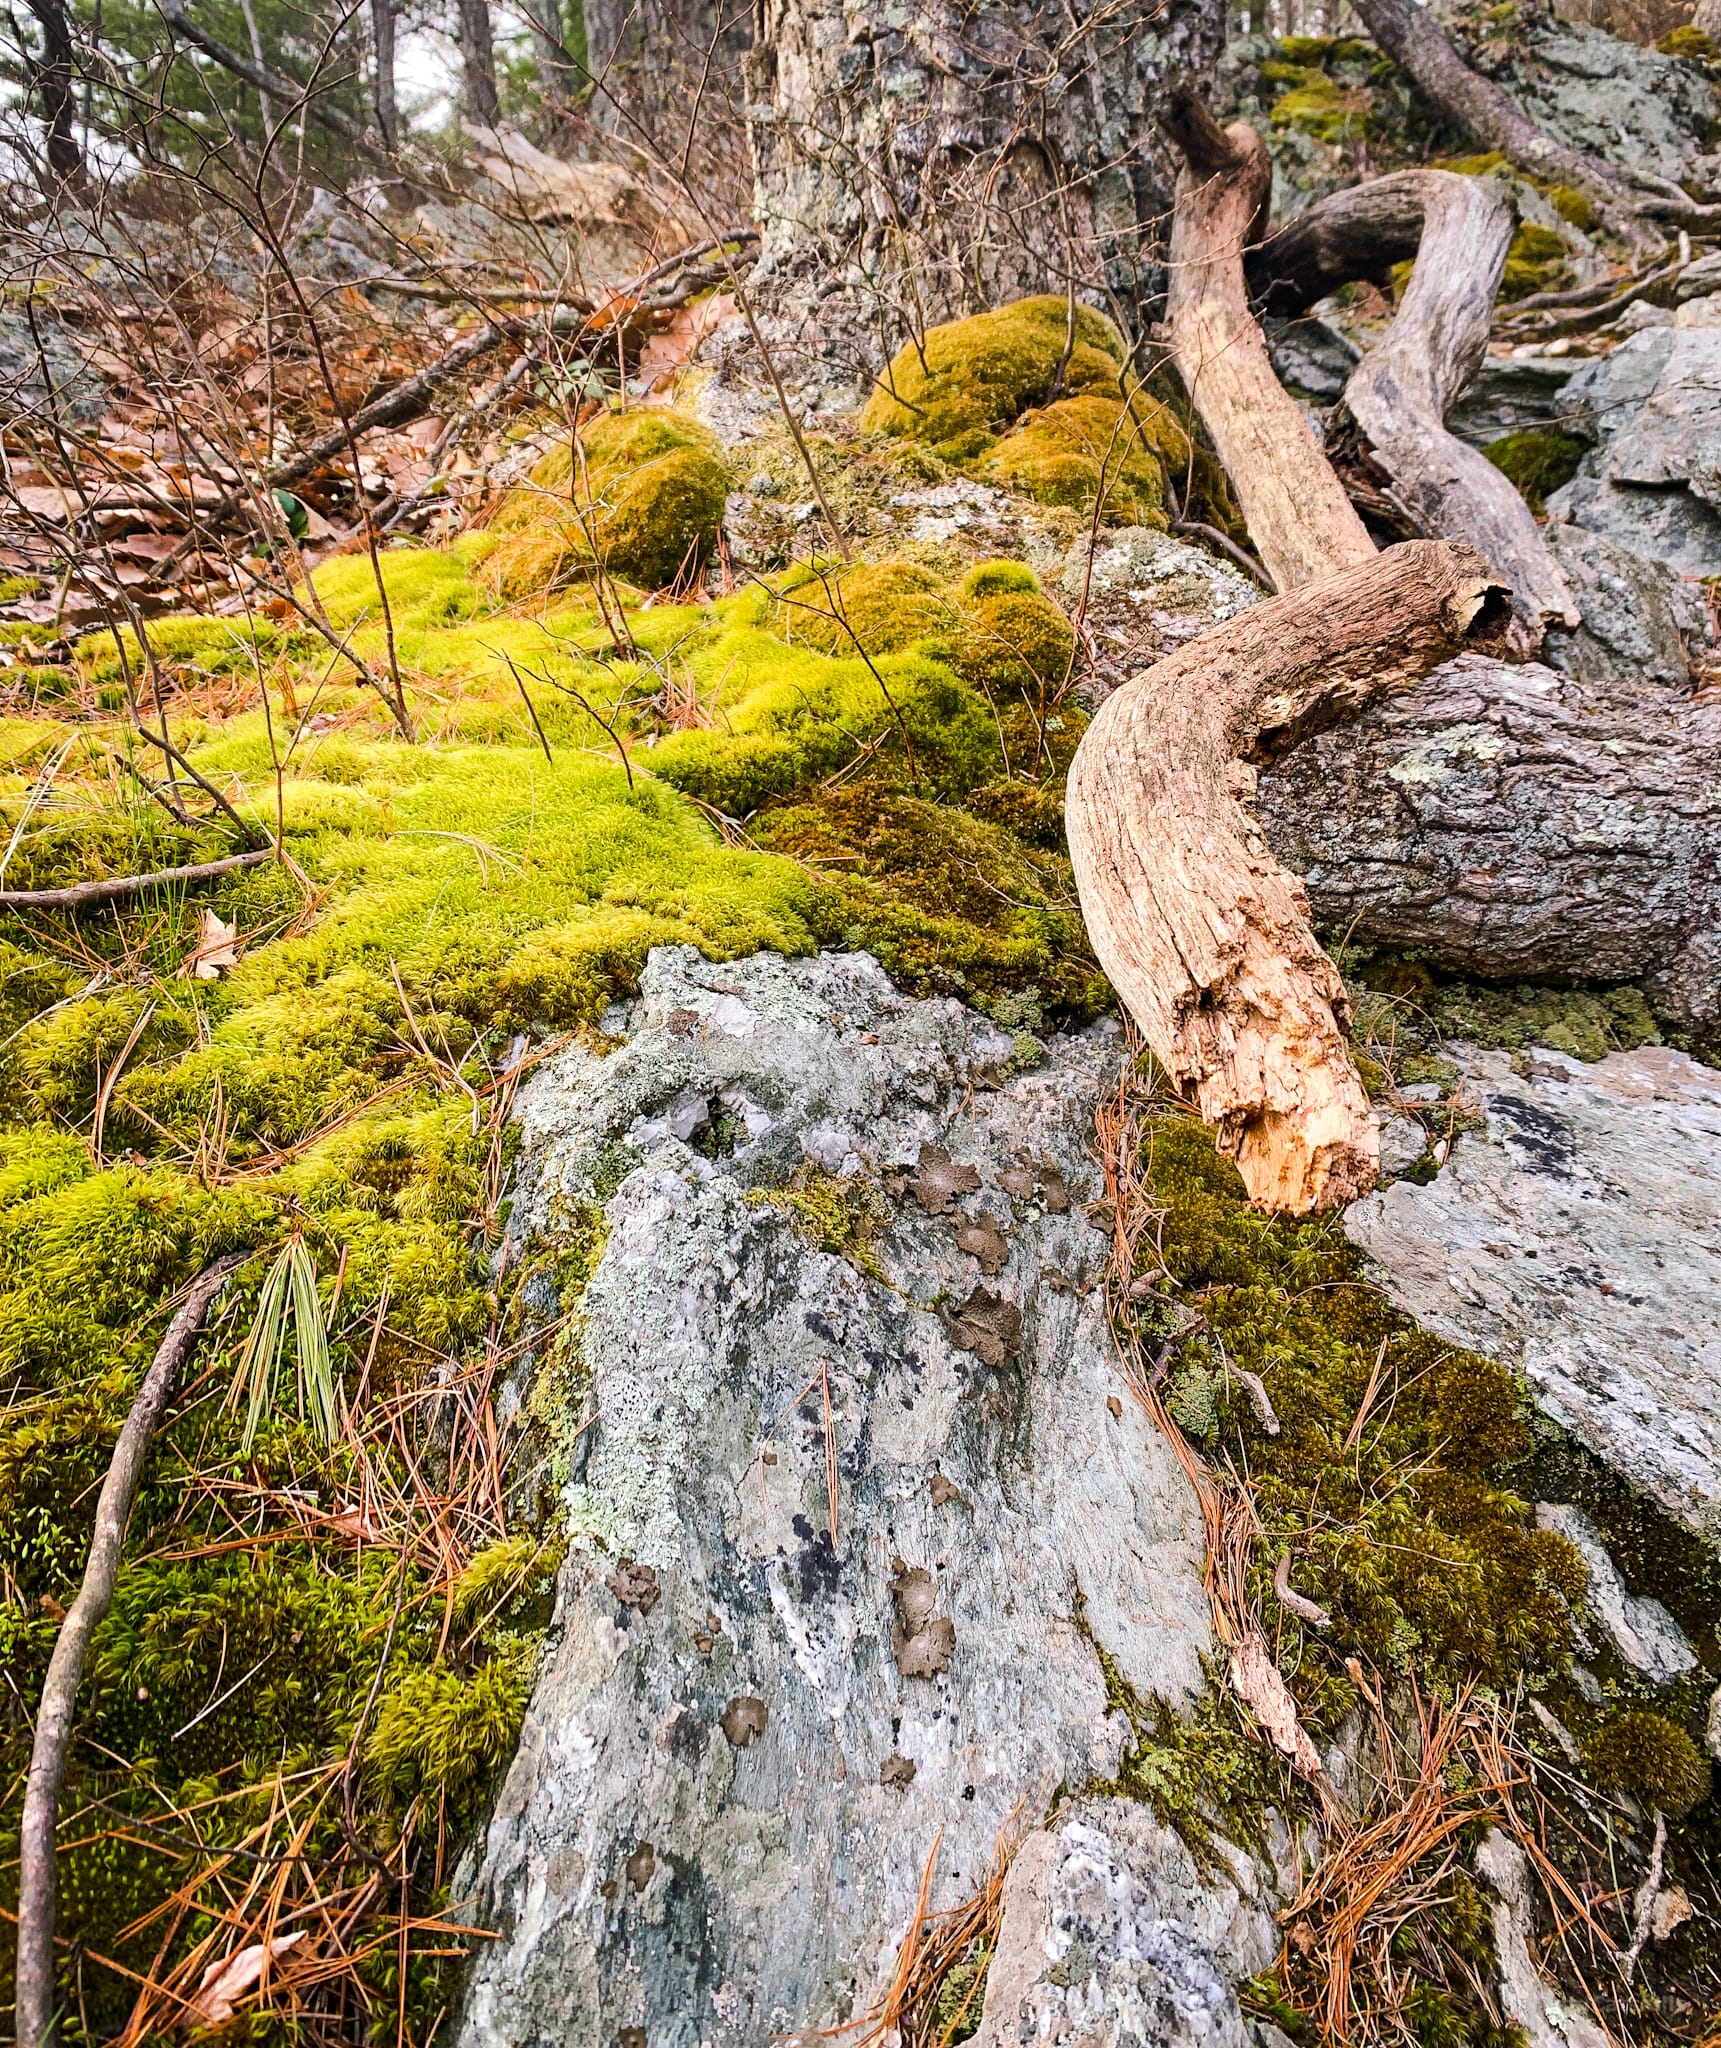 still life with rock, branch, moss